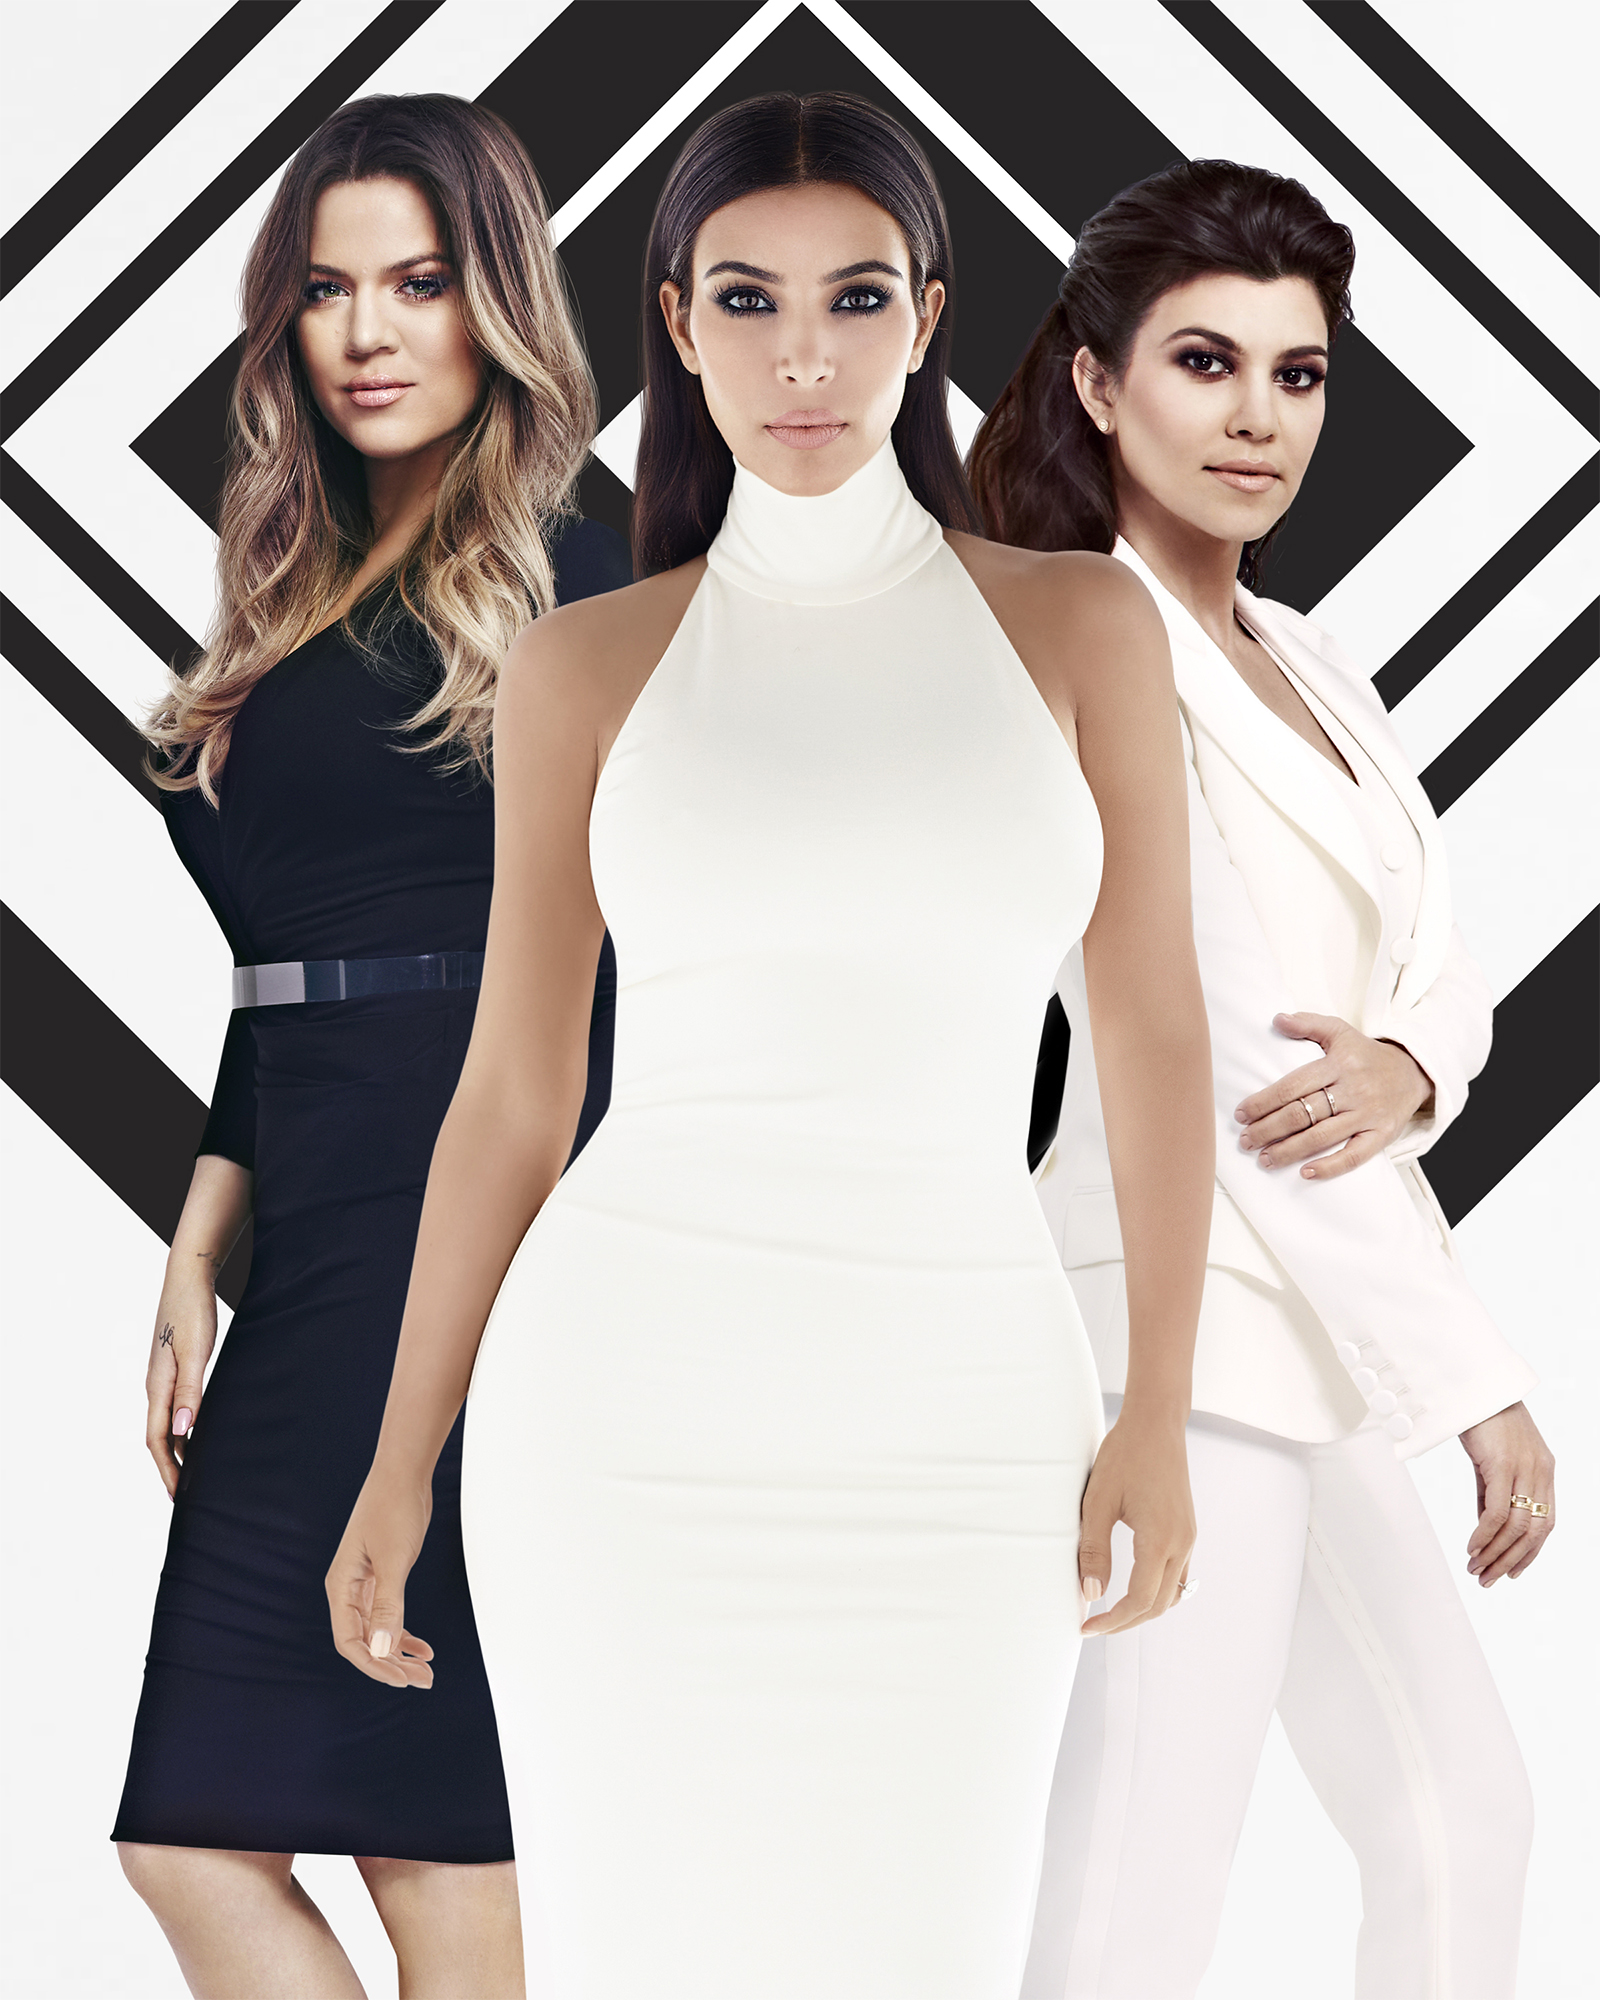 Kourtney and Kim Kardashian 'hide' Khloe's 'baby bump'